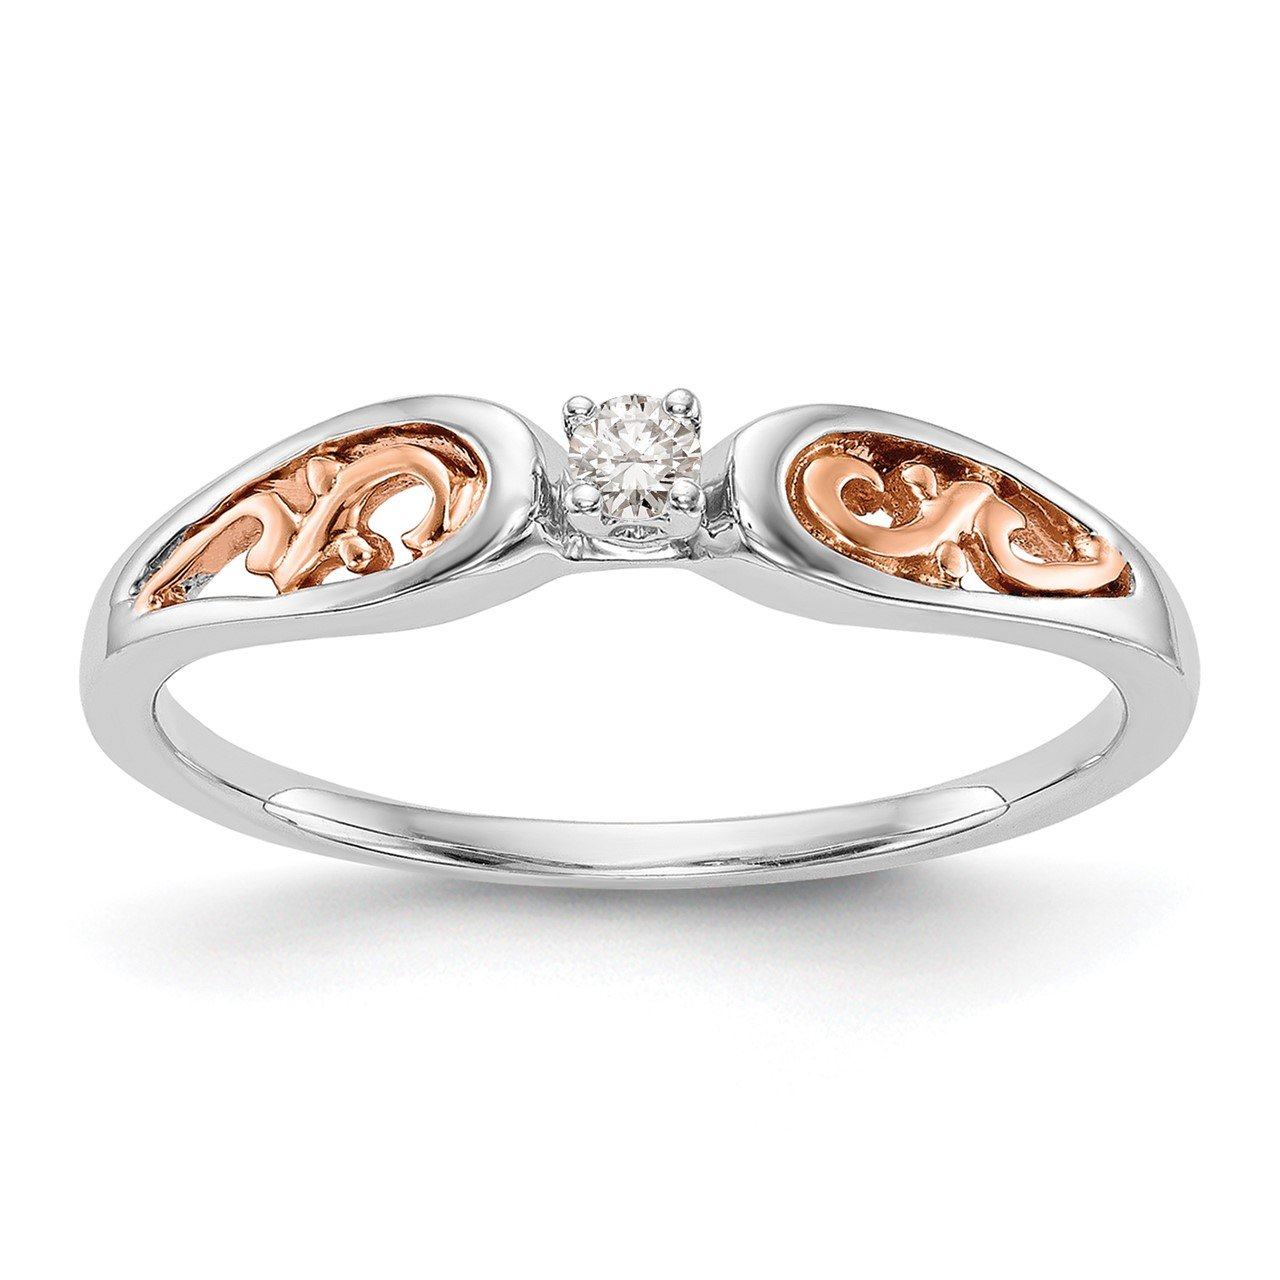 14K White Gold and Rose Gold Comp. Diamond Promise/Engagement Ring